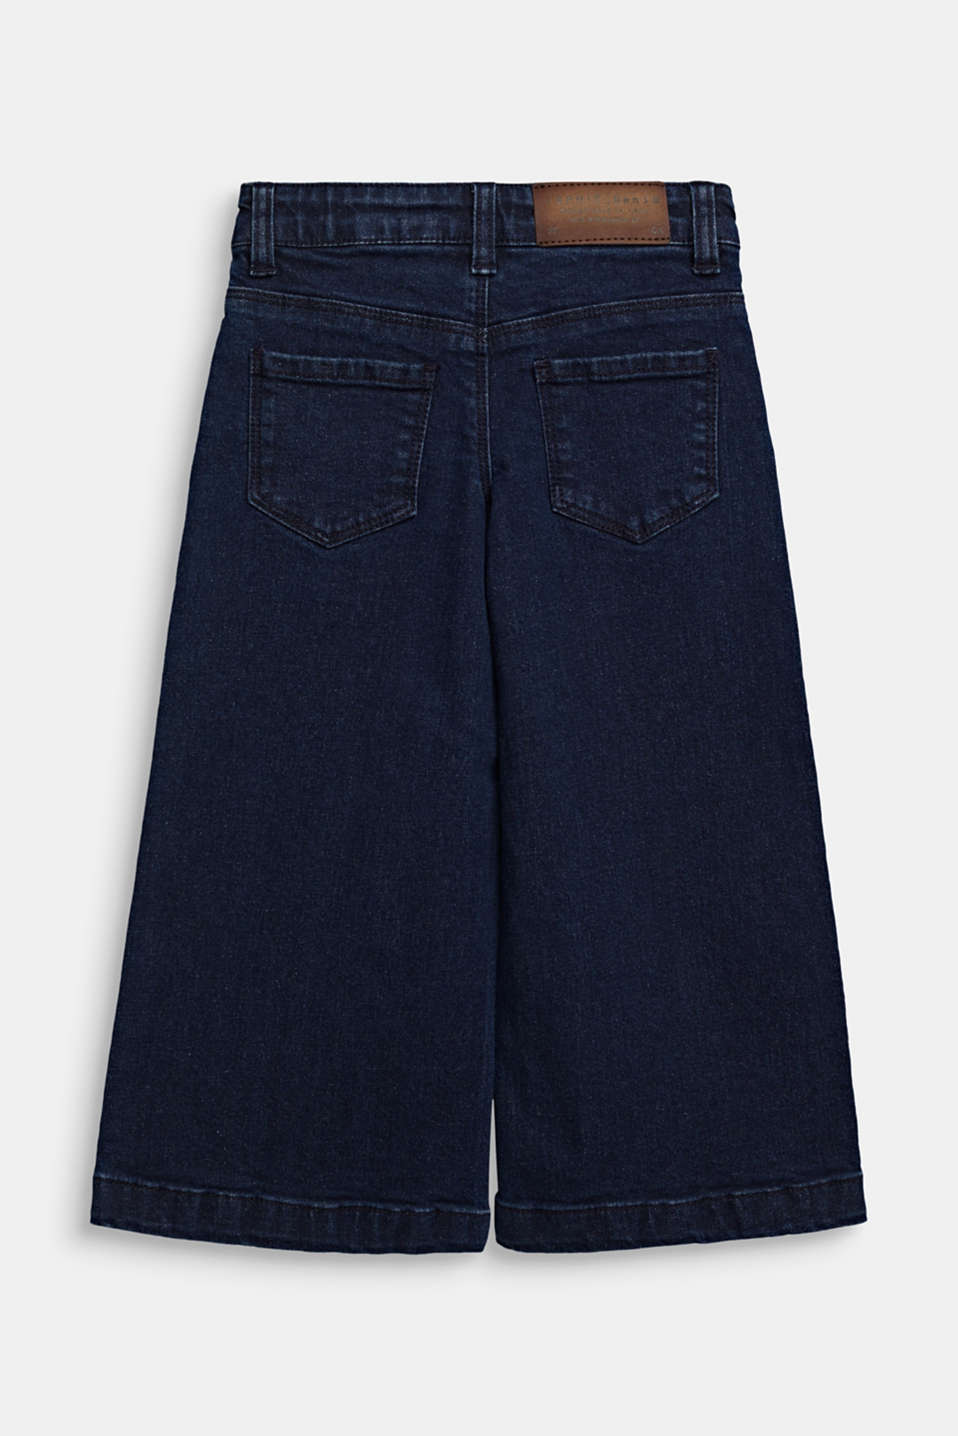 Culottes in stretch denim, adjustable waistband, DARK INDIGO DE, detail image number 1